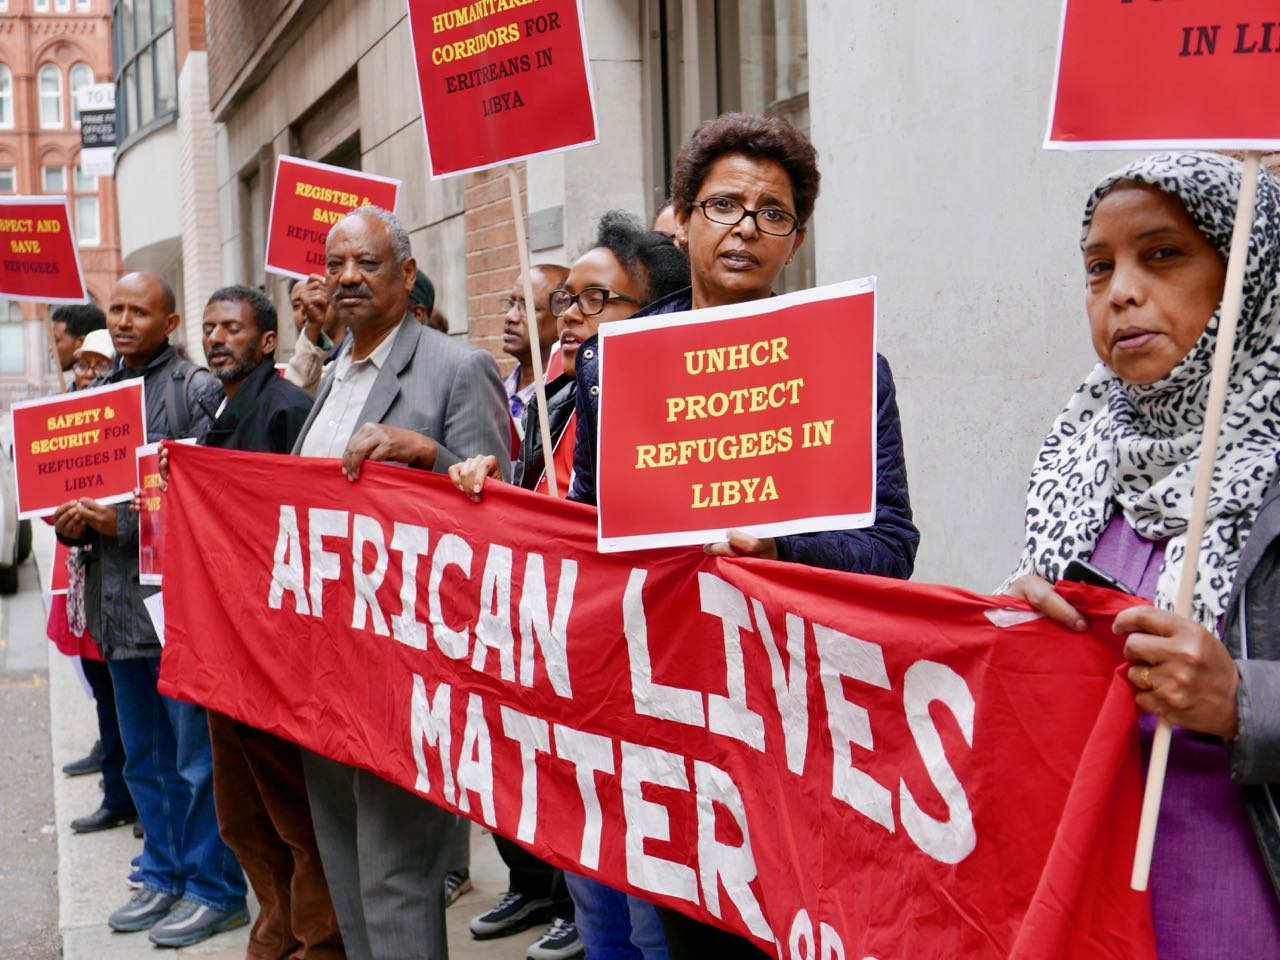 Eritrean community demonstrates outside UNHCR over refugees in Libya